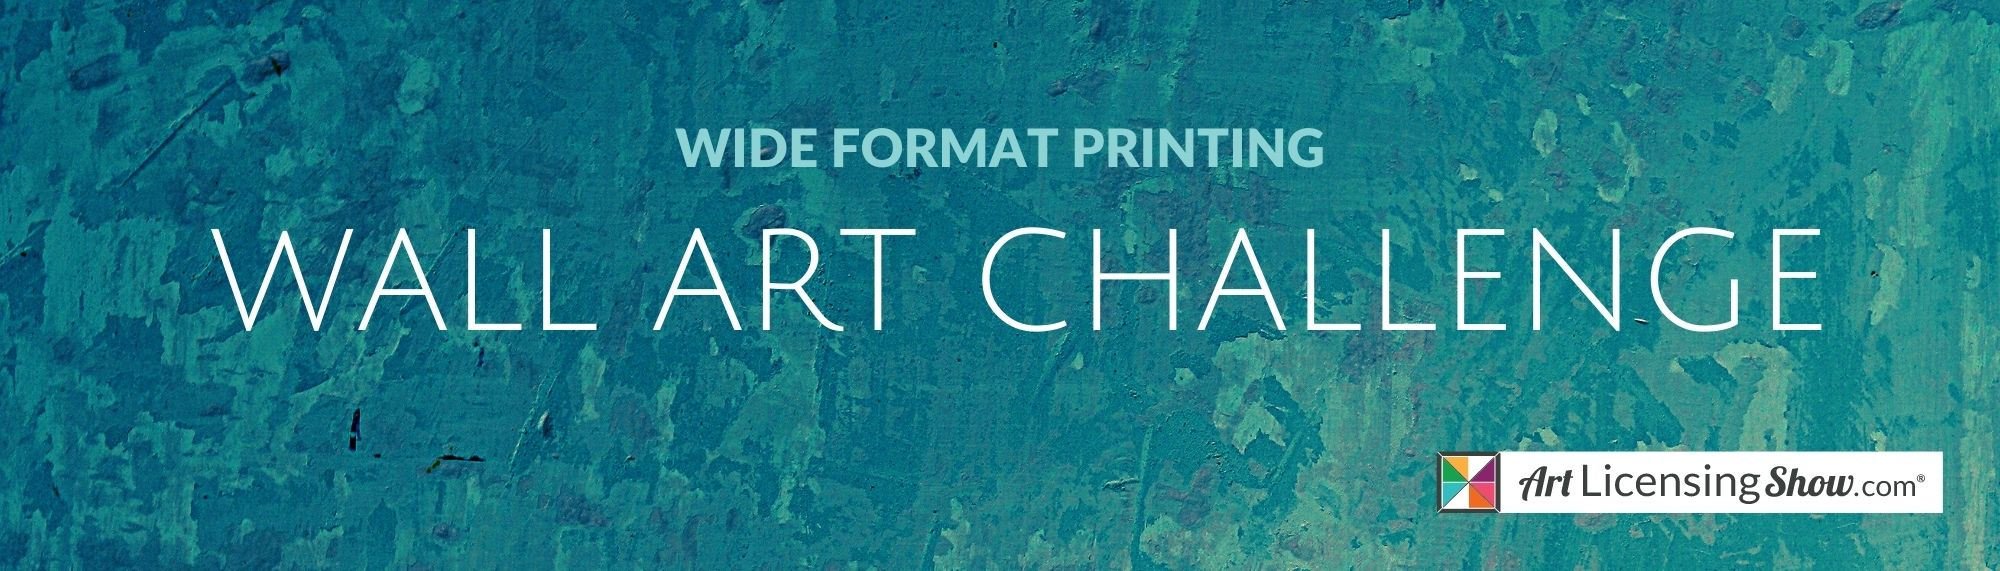 art-licensing-show-banner-wide-format-printing-wall-art-challenge-art-licensing-show